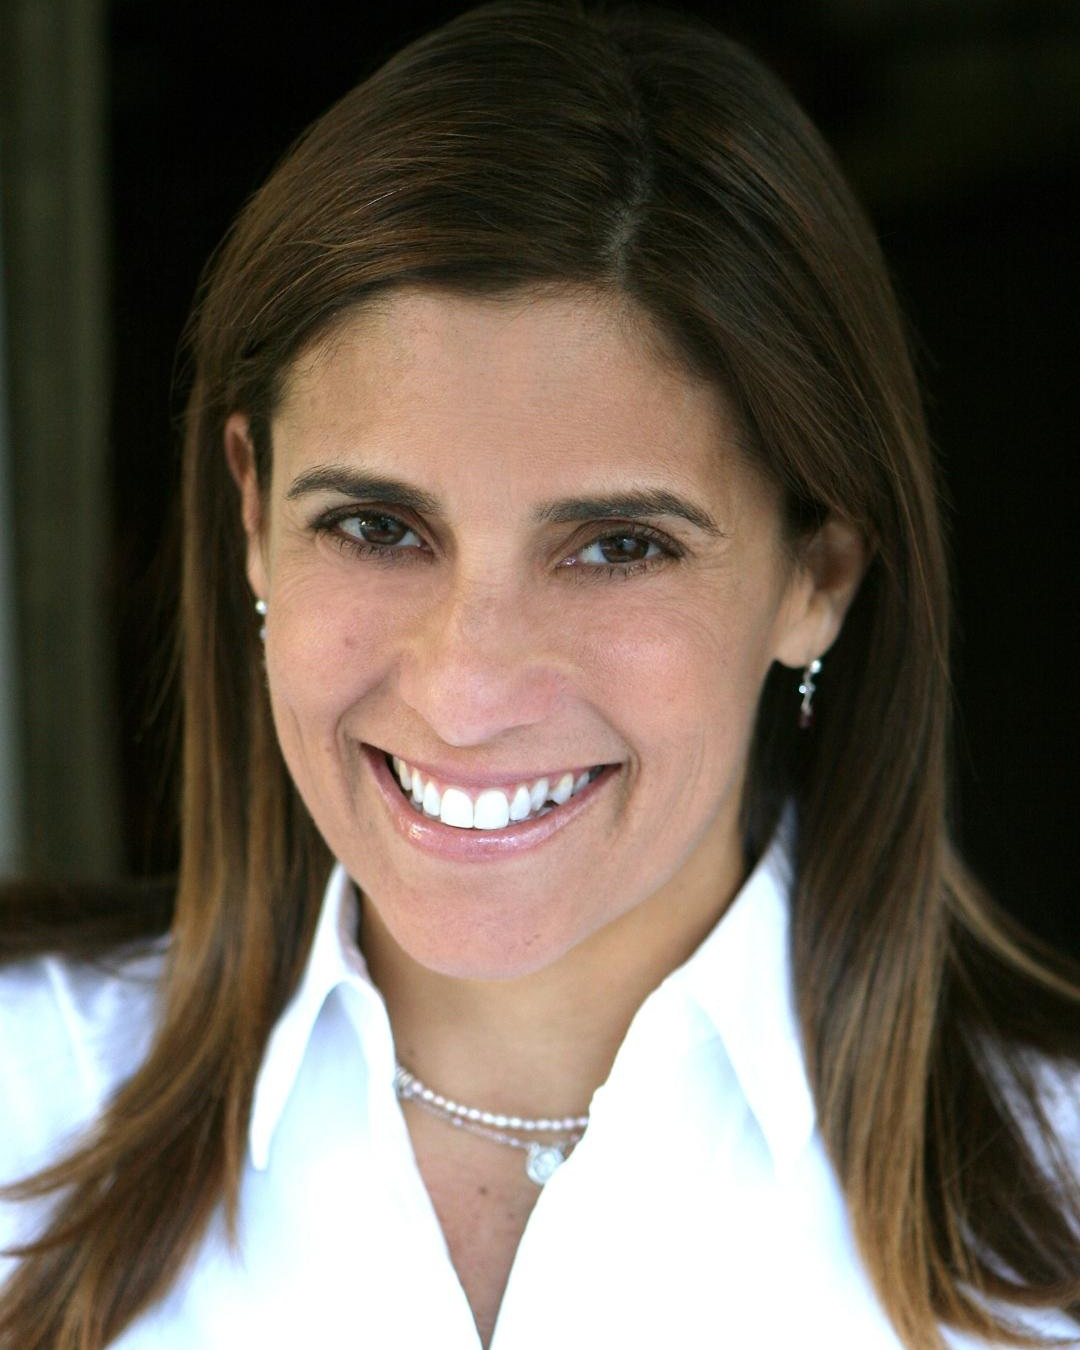 Karen Brodkin - Executive VP of Content Strategy & Development at Endeavor